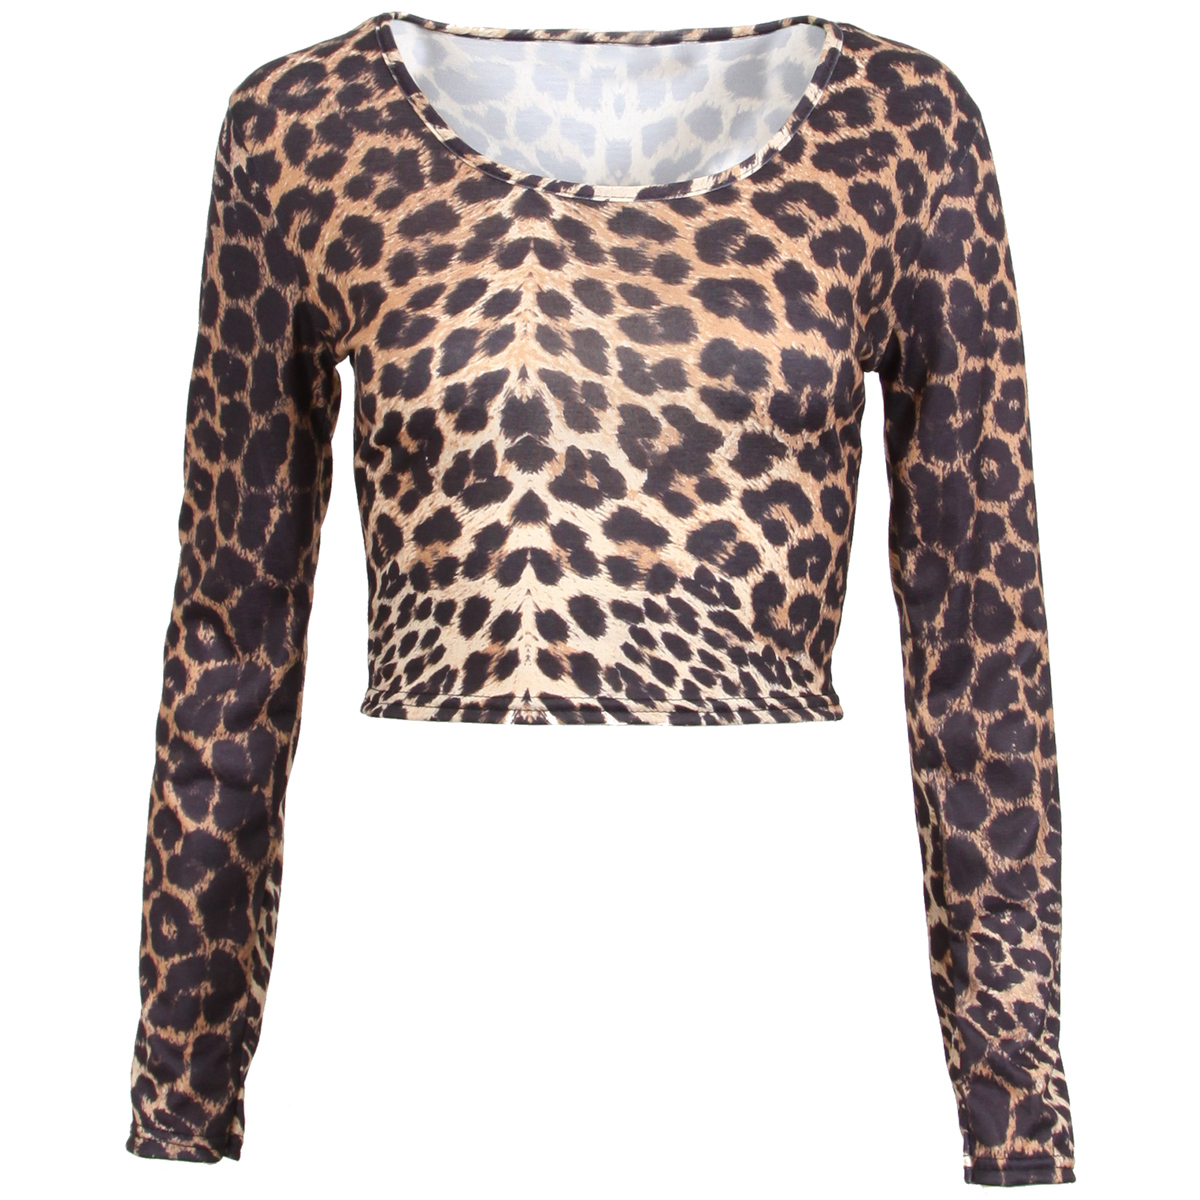 r5e-at red long sleeve leopard print pocket t-shirt top 2,2,2.